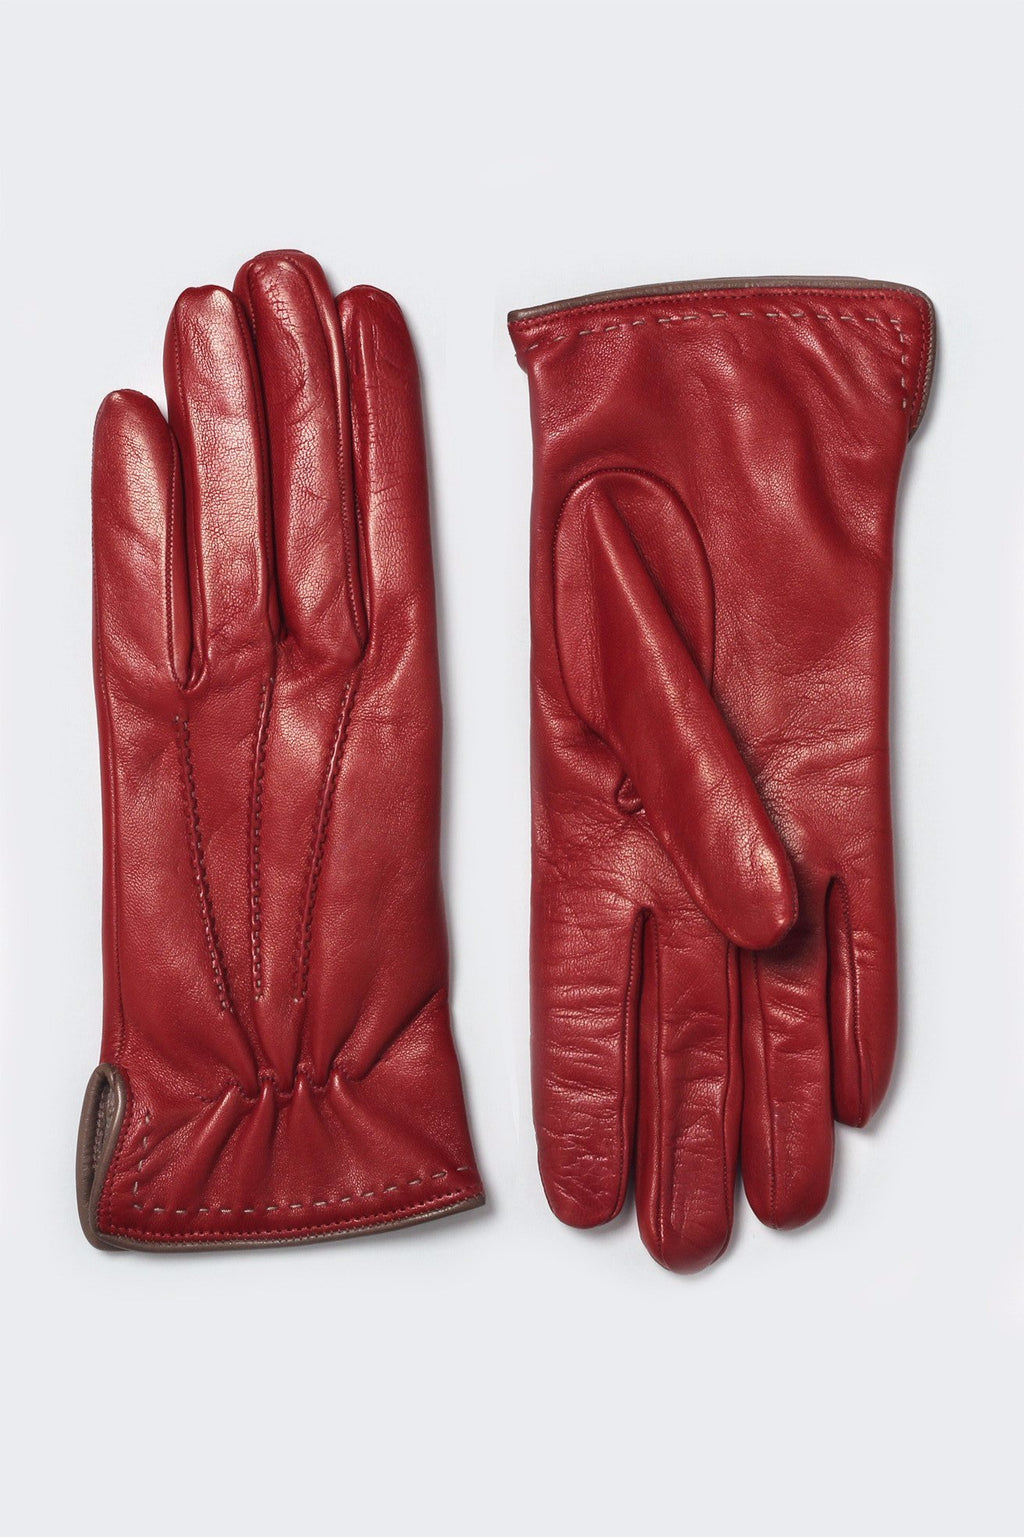 Carmine leather gloves cashmere lined made in Italy